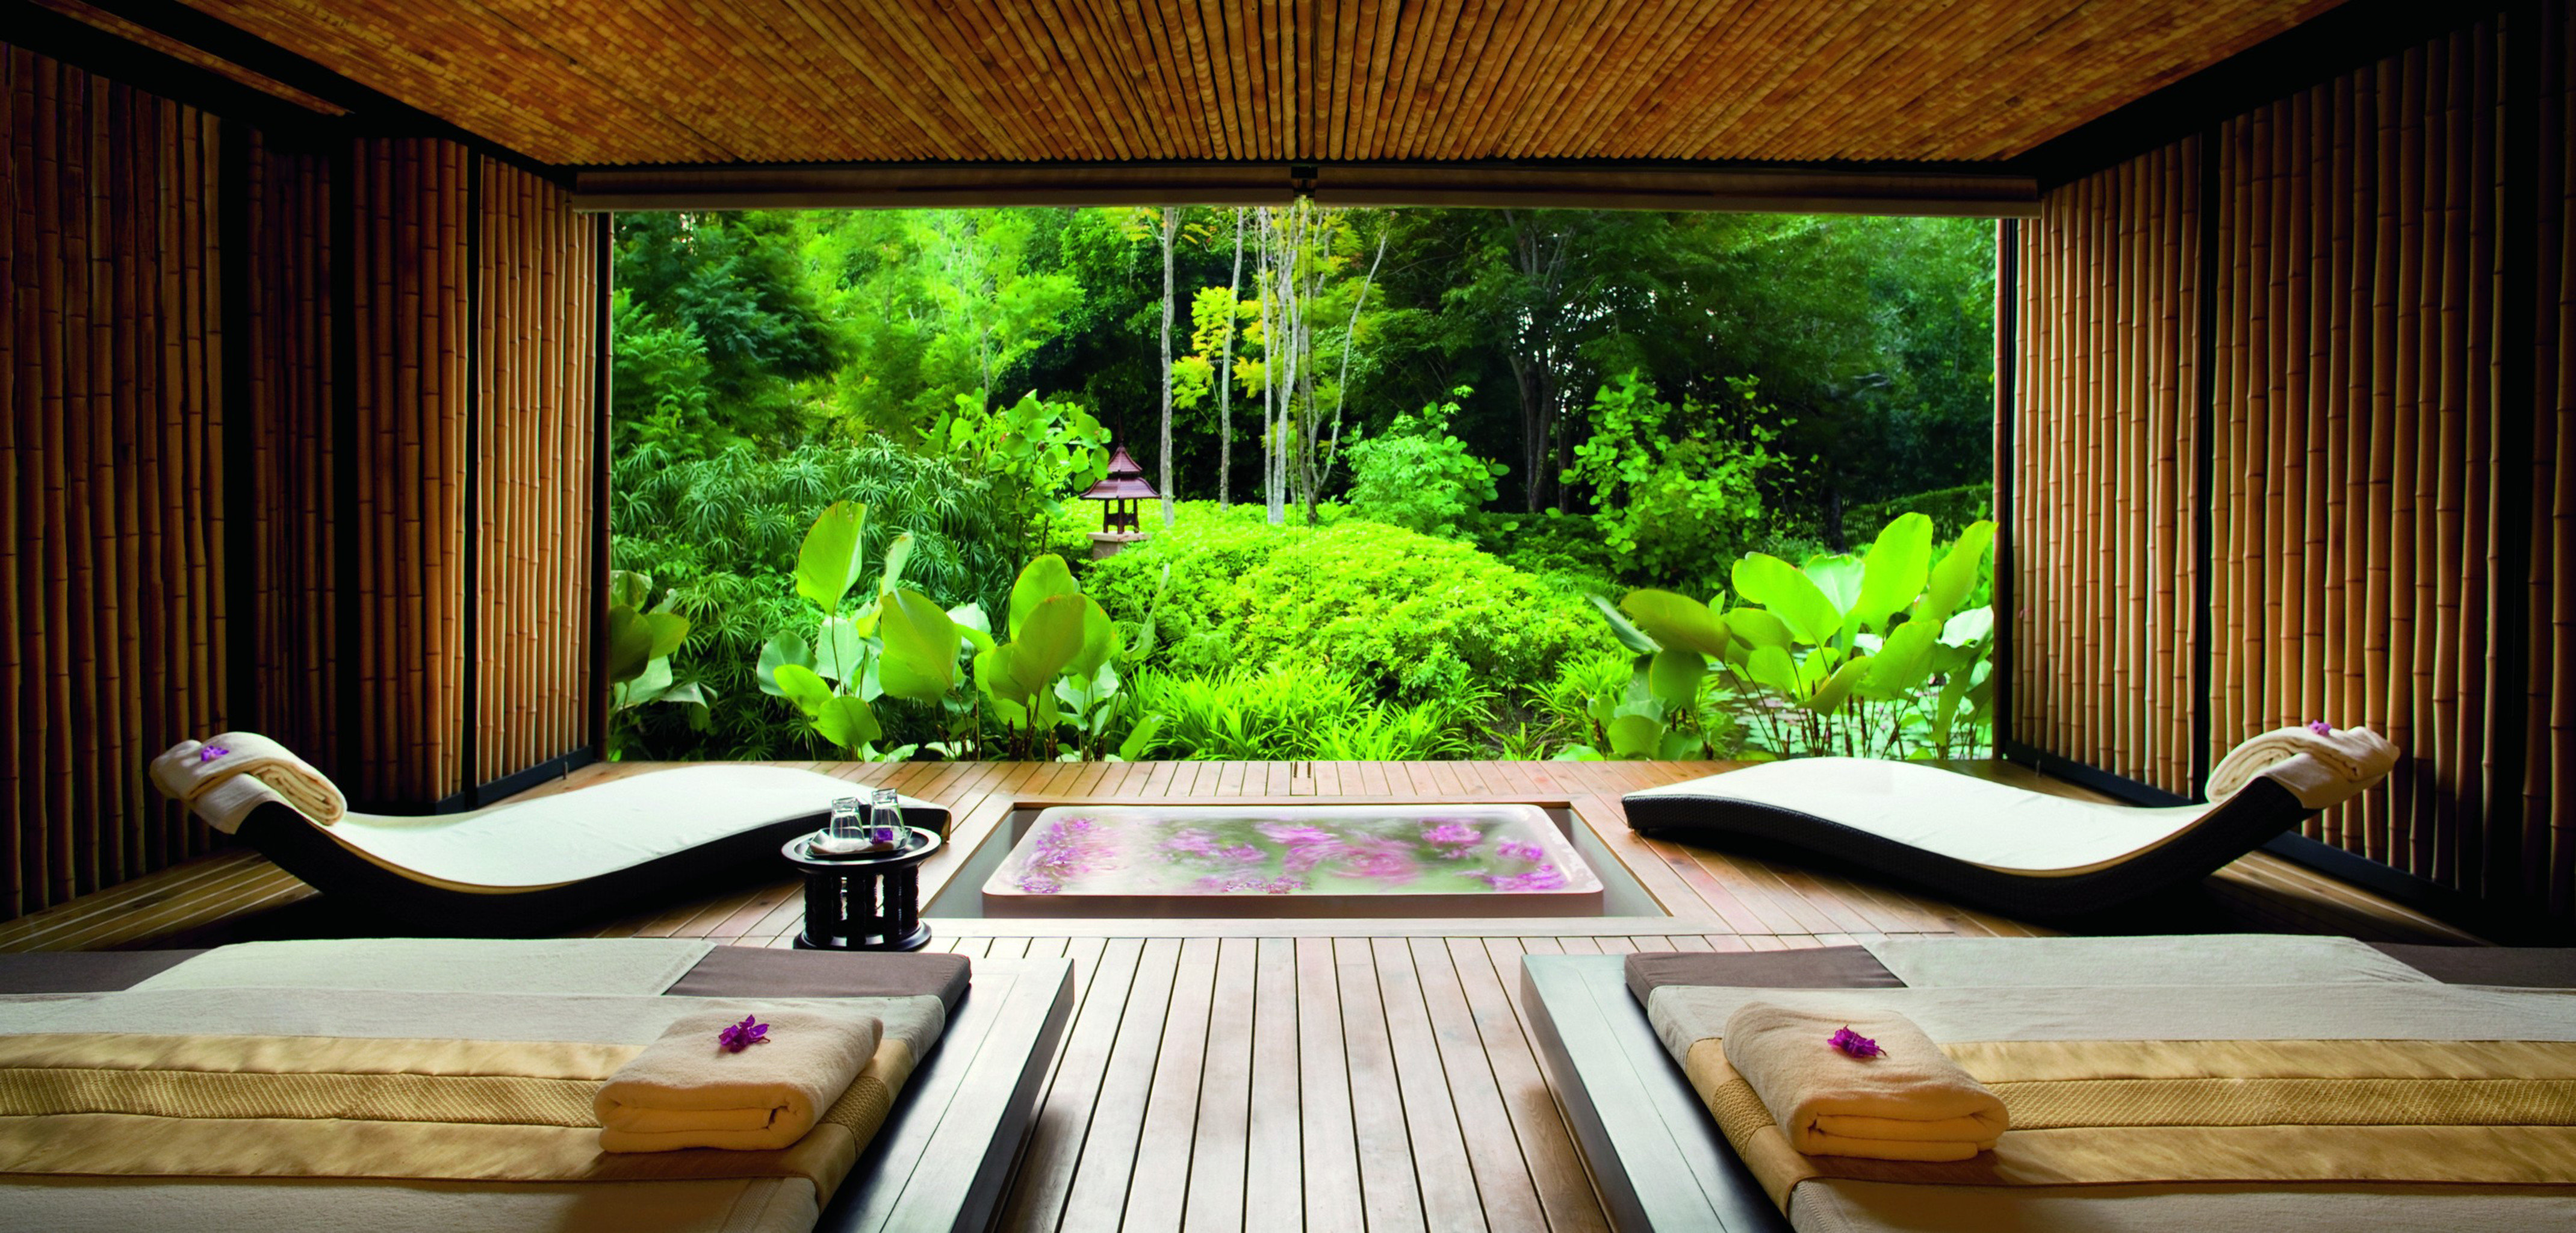 Cultural Deck Eco Elegant Honeymoon Jungle Luxury Nature Romance Romantic Spa Terrace Tropical Wellness property wooden house swimming pool home living room cottage Resort Villa backyard mansion Suite dining table